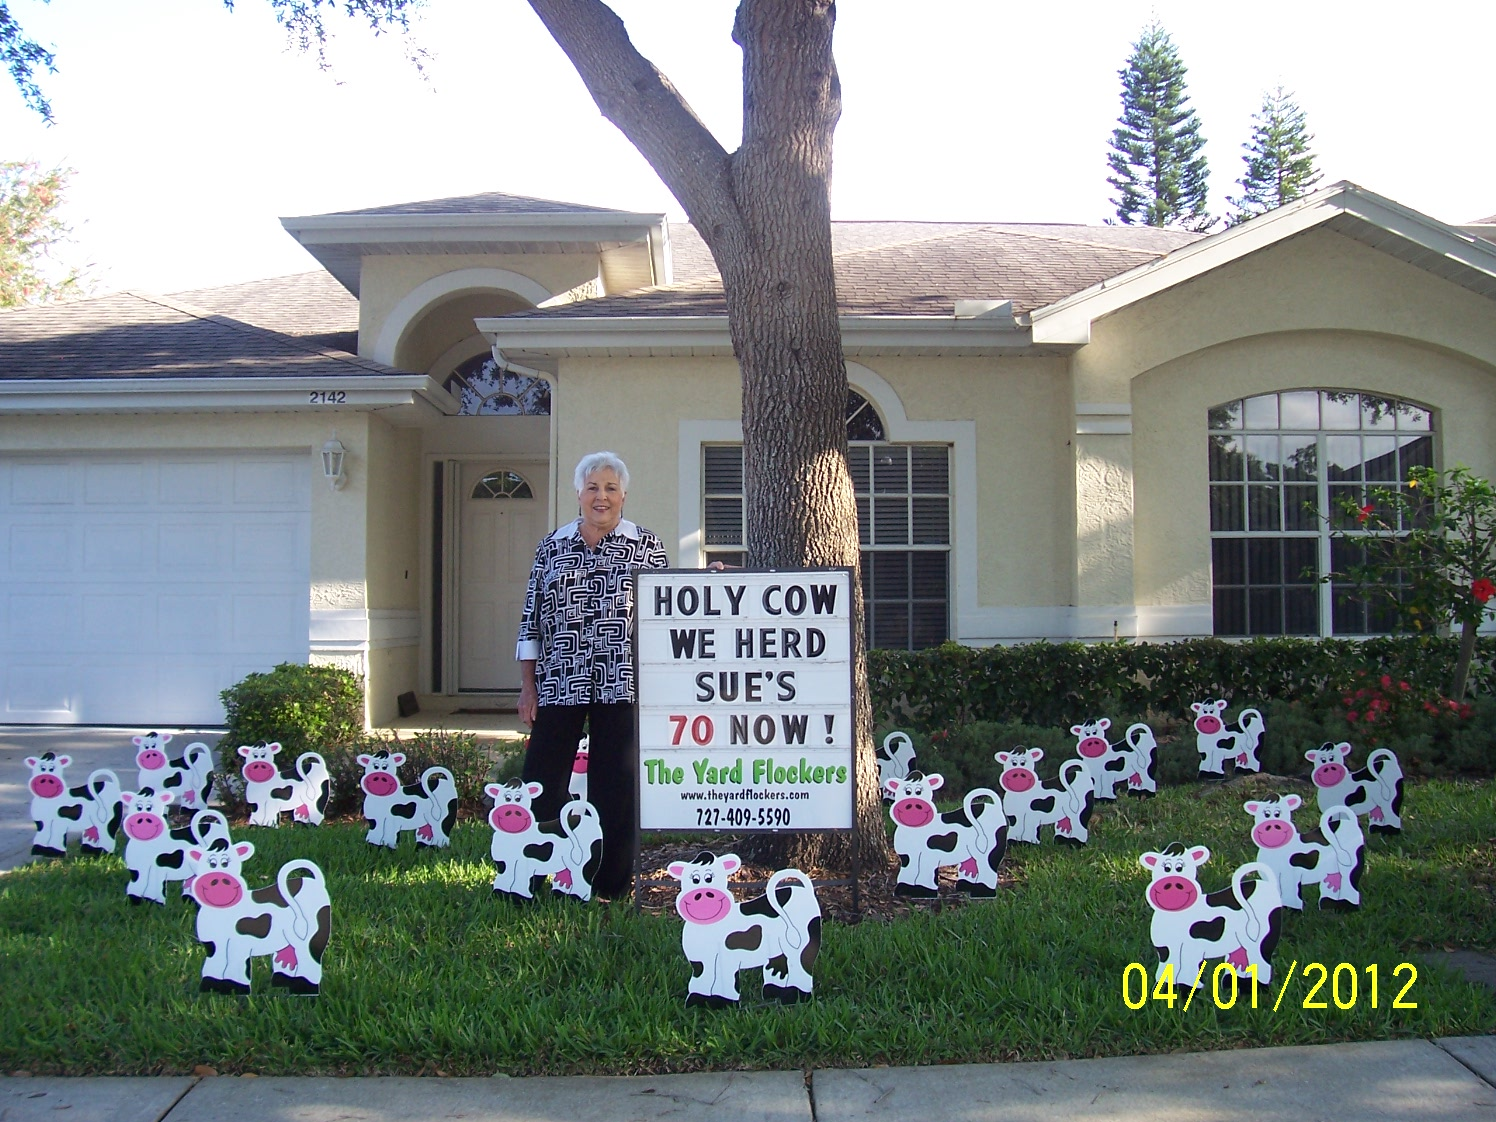 Birthday Yard Flocking Lawn Decorations Serving Tampa Bay Florida One Smile At A Time Call Today